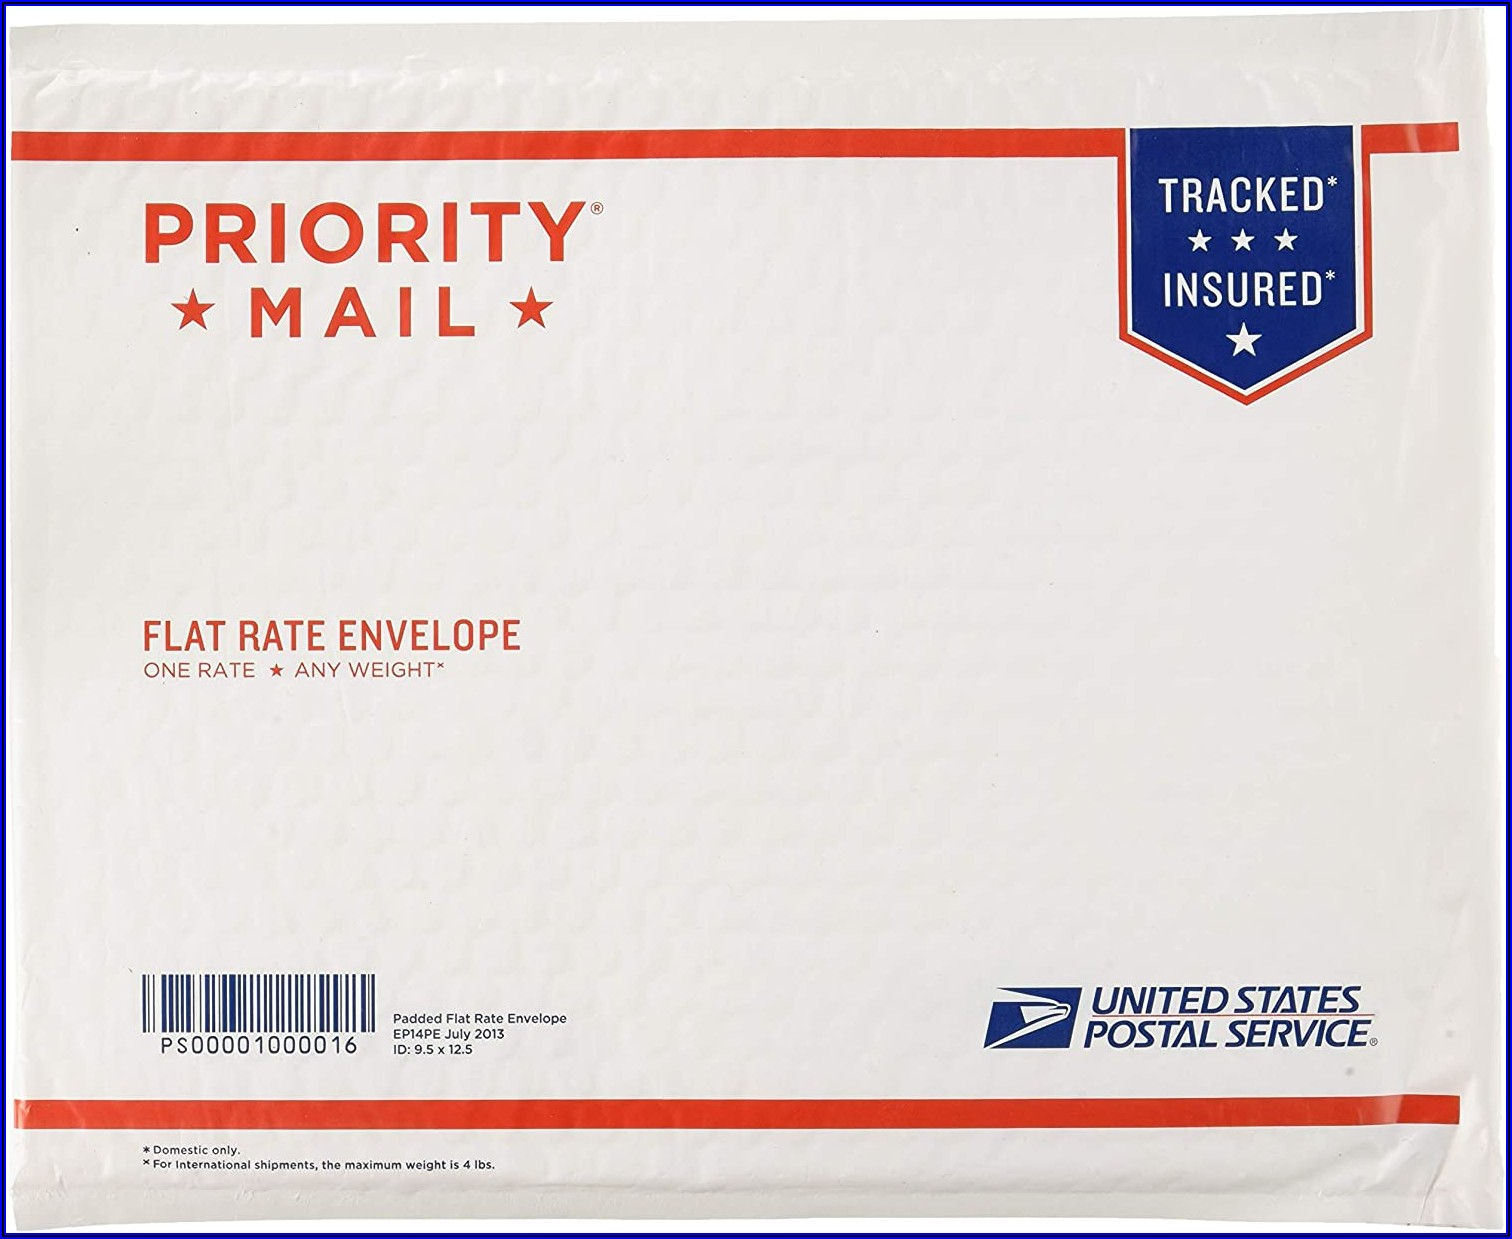 Postage For Express Mail Flat Rate Envelope